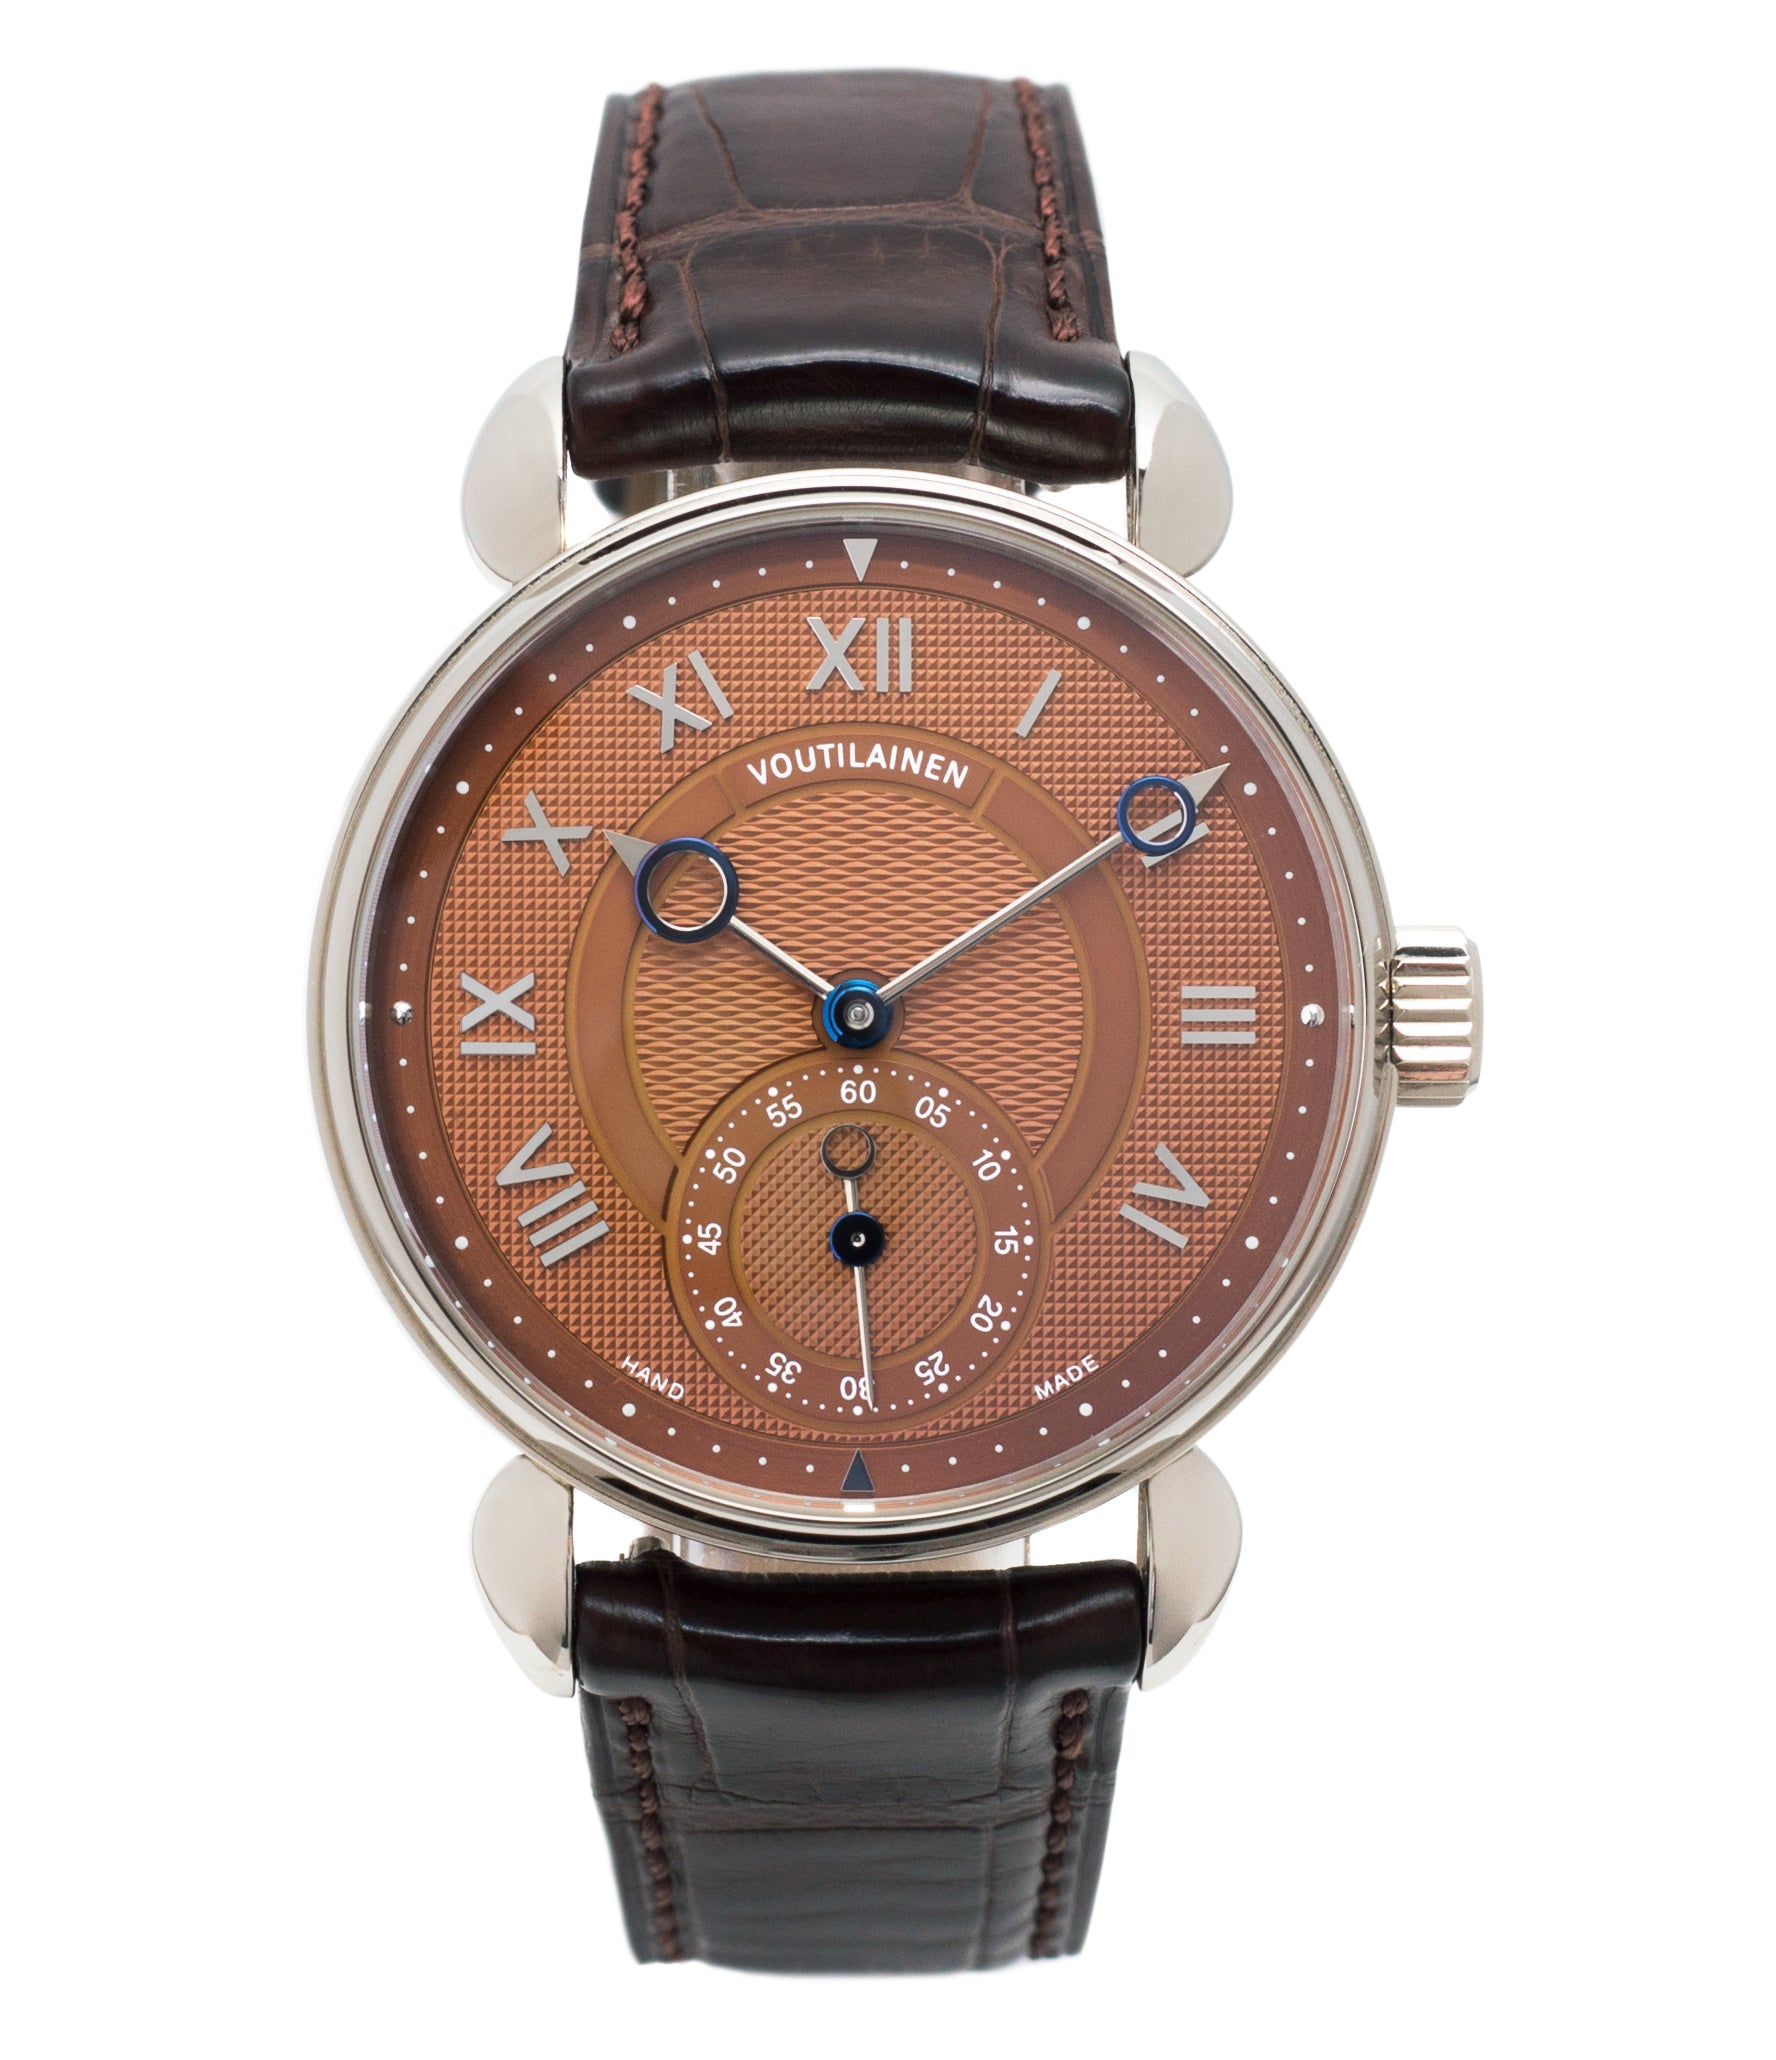 buy Kari Voutilainen Observatoire Limited Edition rare brown dial watch online at A Collected Man London specialist endorsed seller of pre-owned independent watchmakers